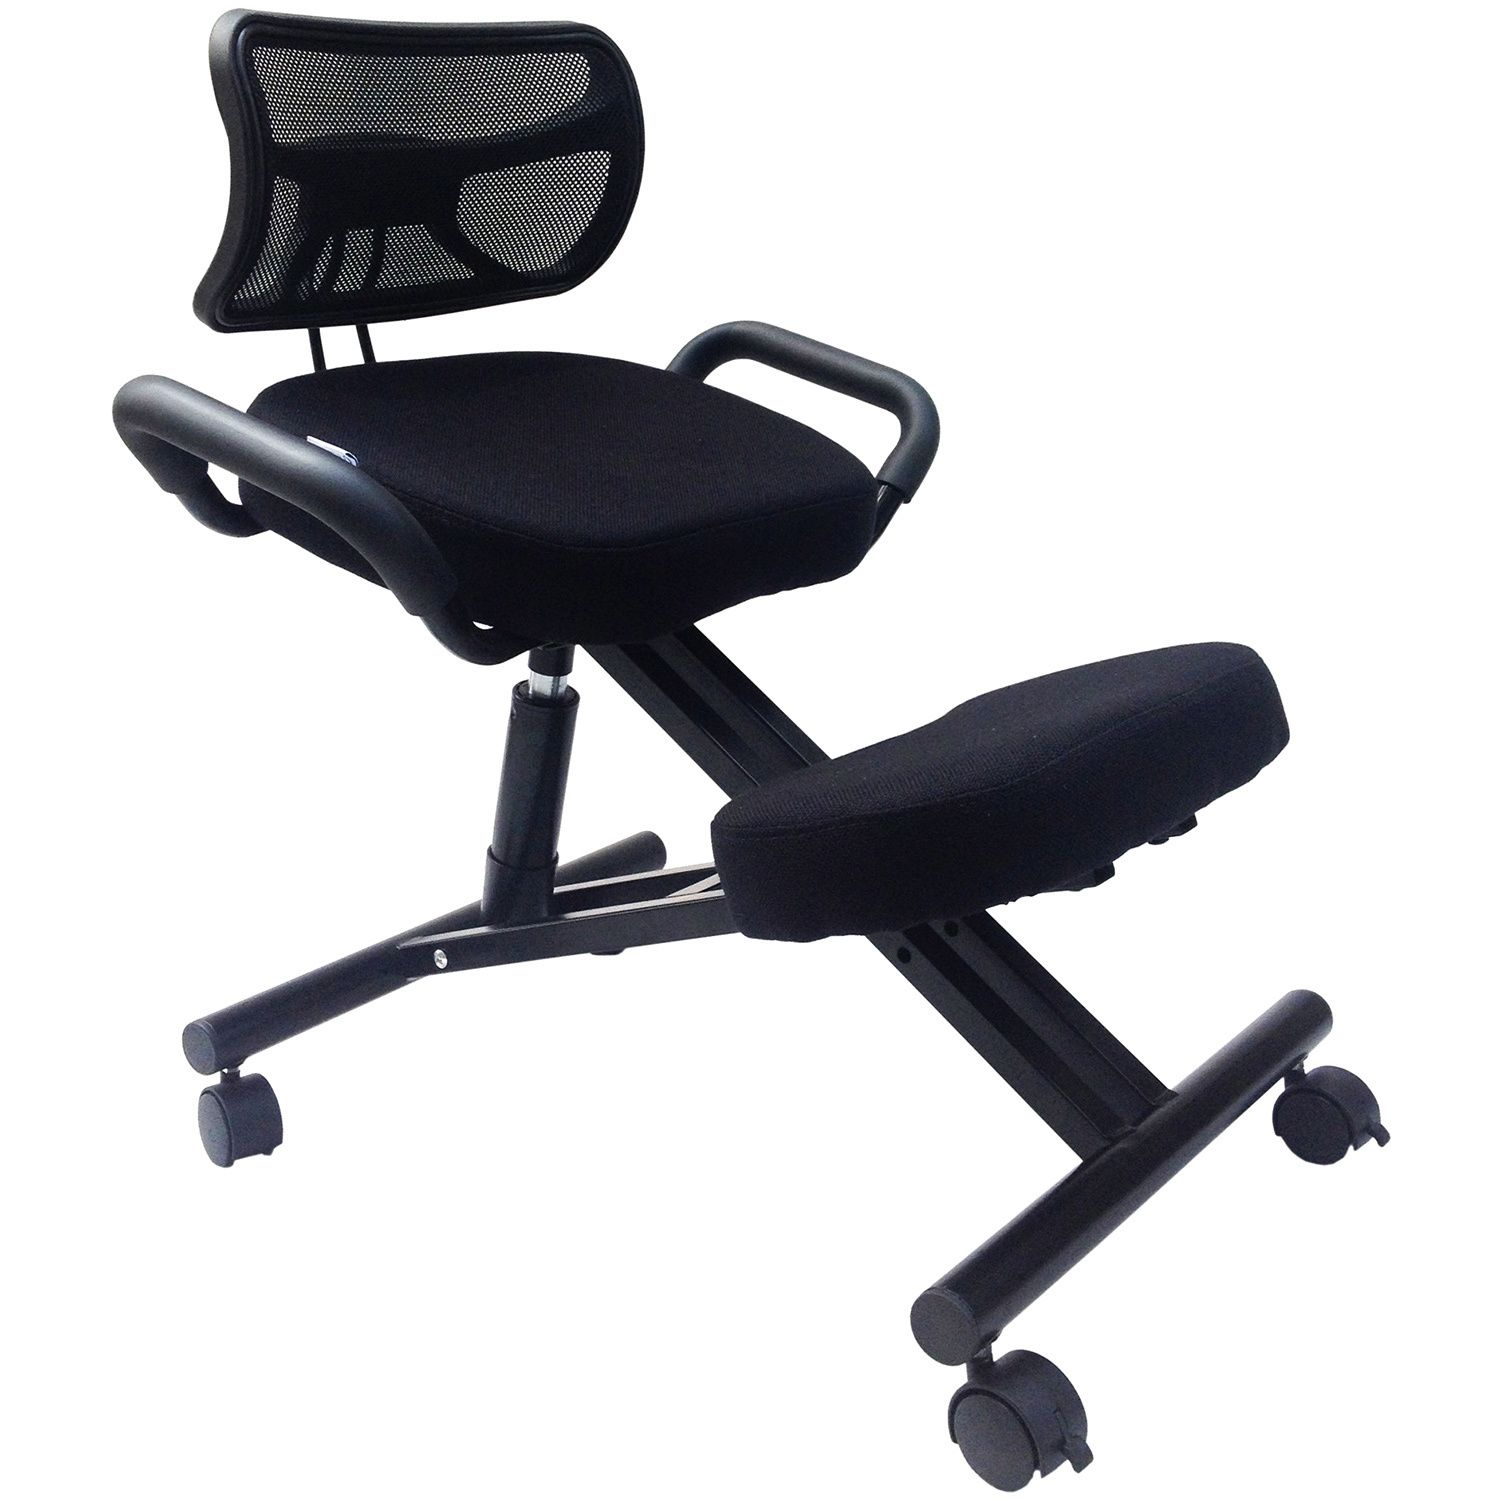 The sc 300b ergonomic kneeling chair is built to support and enhance your posture